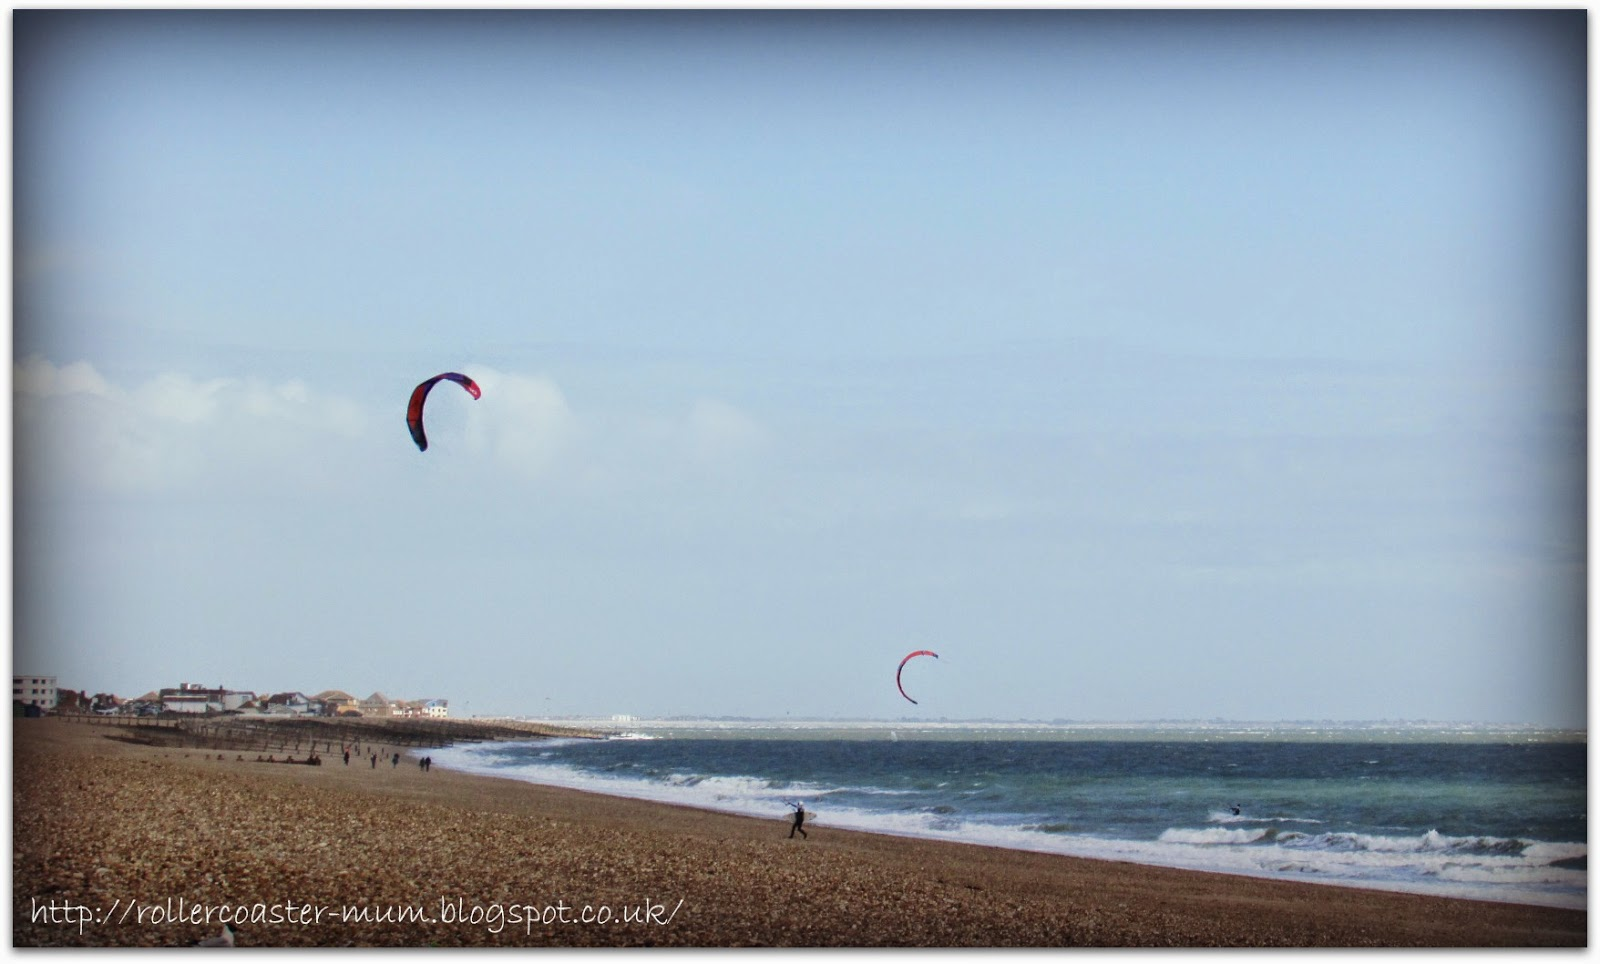 watching the Kite Surfers, Hayling Island